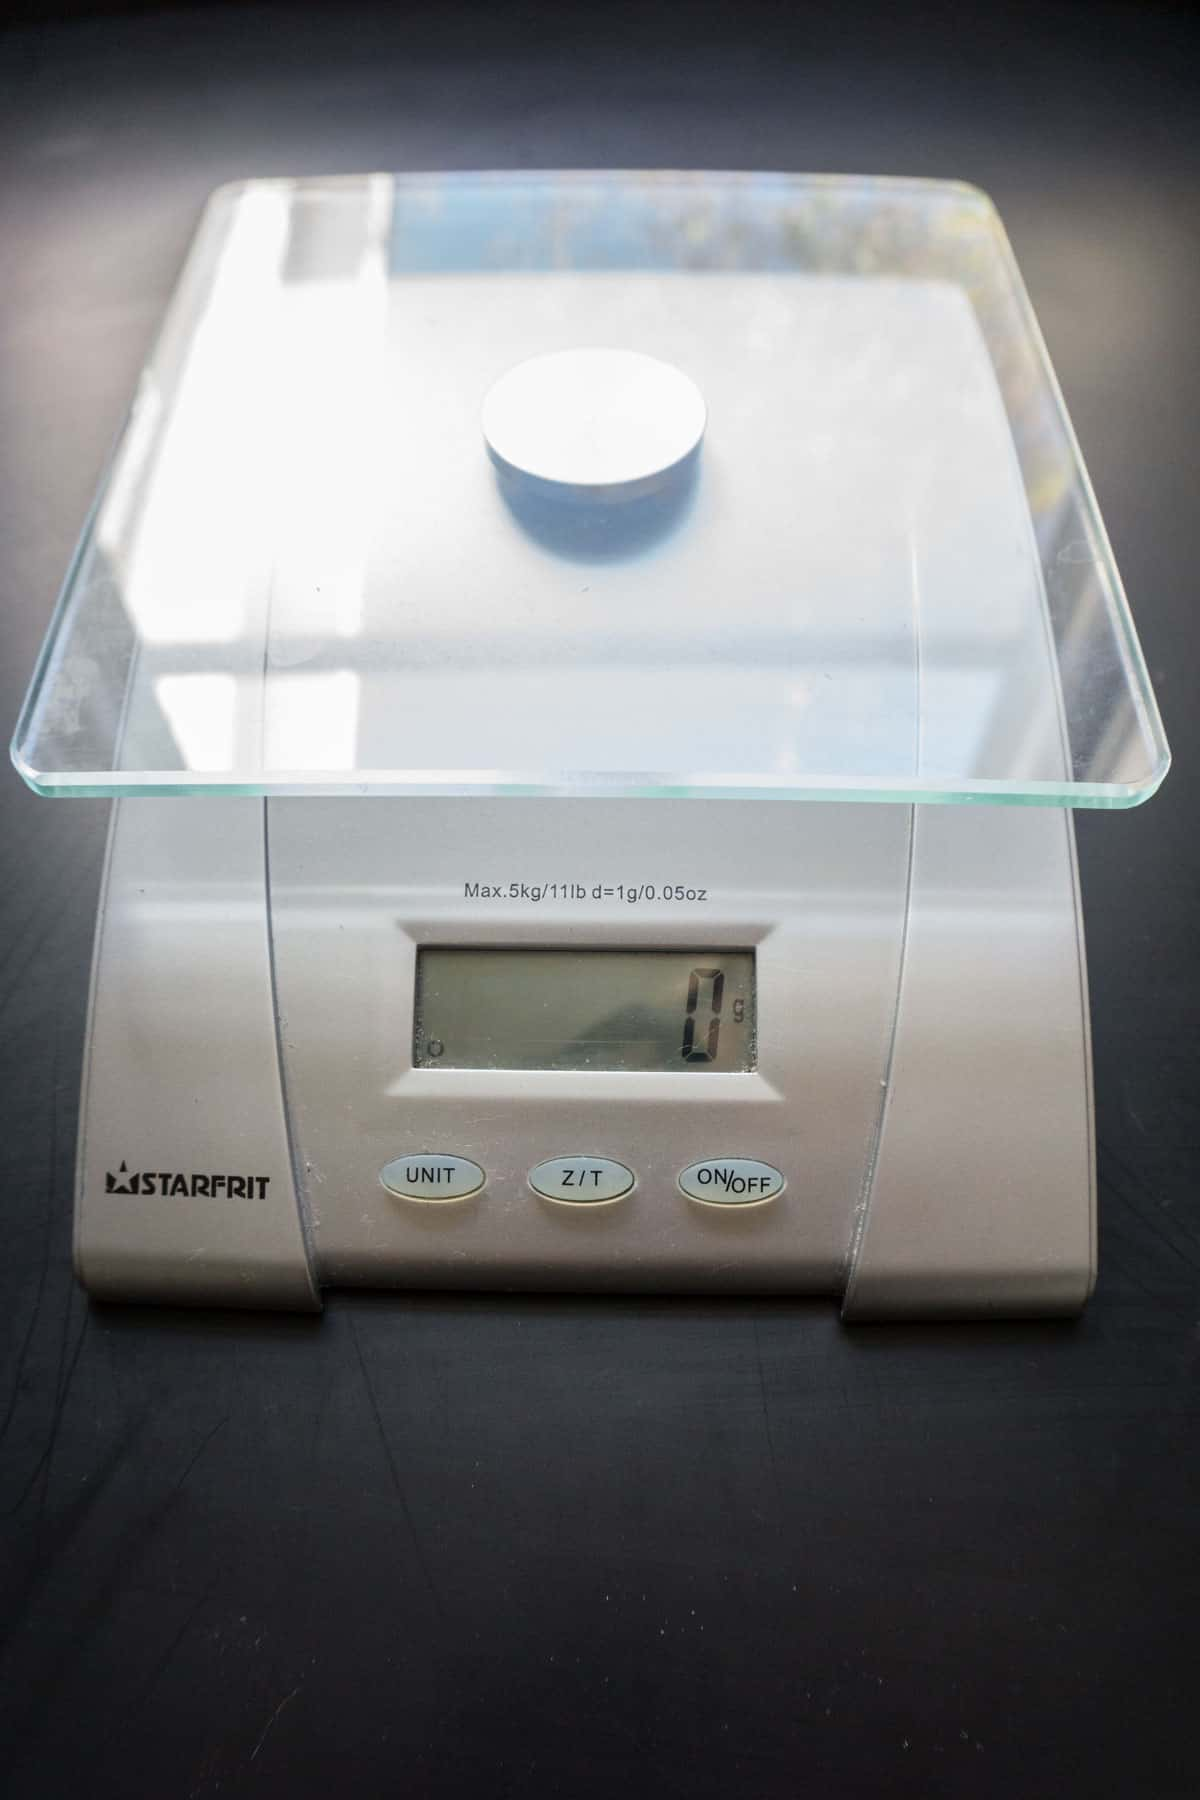 Starfruit kitchen scale